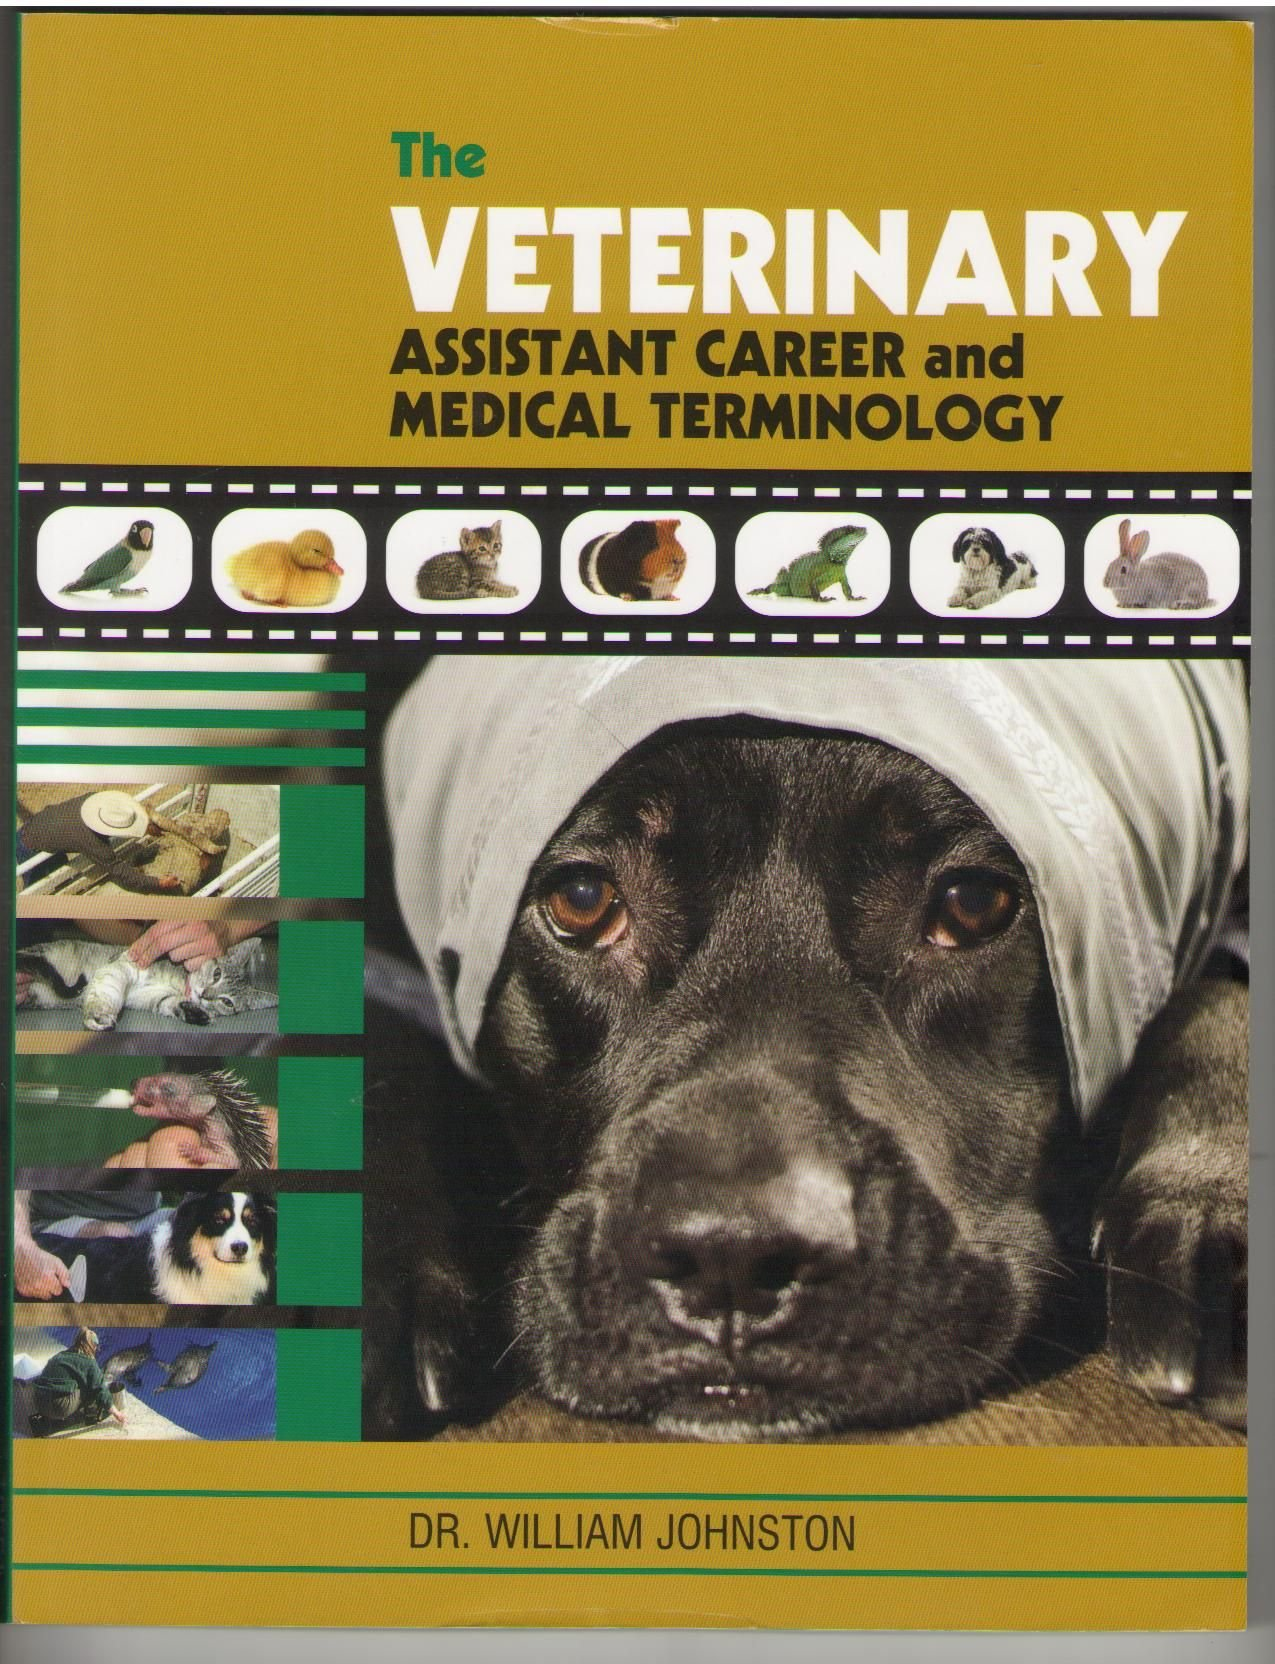 the veterinary assistant career and medical terminology dr the veterinary assistant career and medical terminology dr william johnston 9782923623306 com books